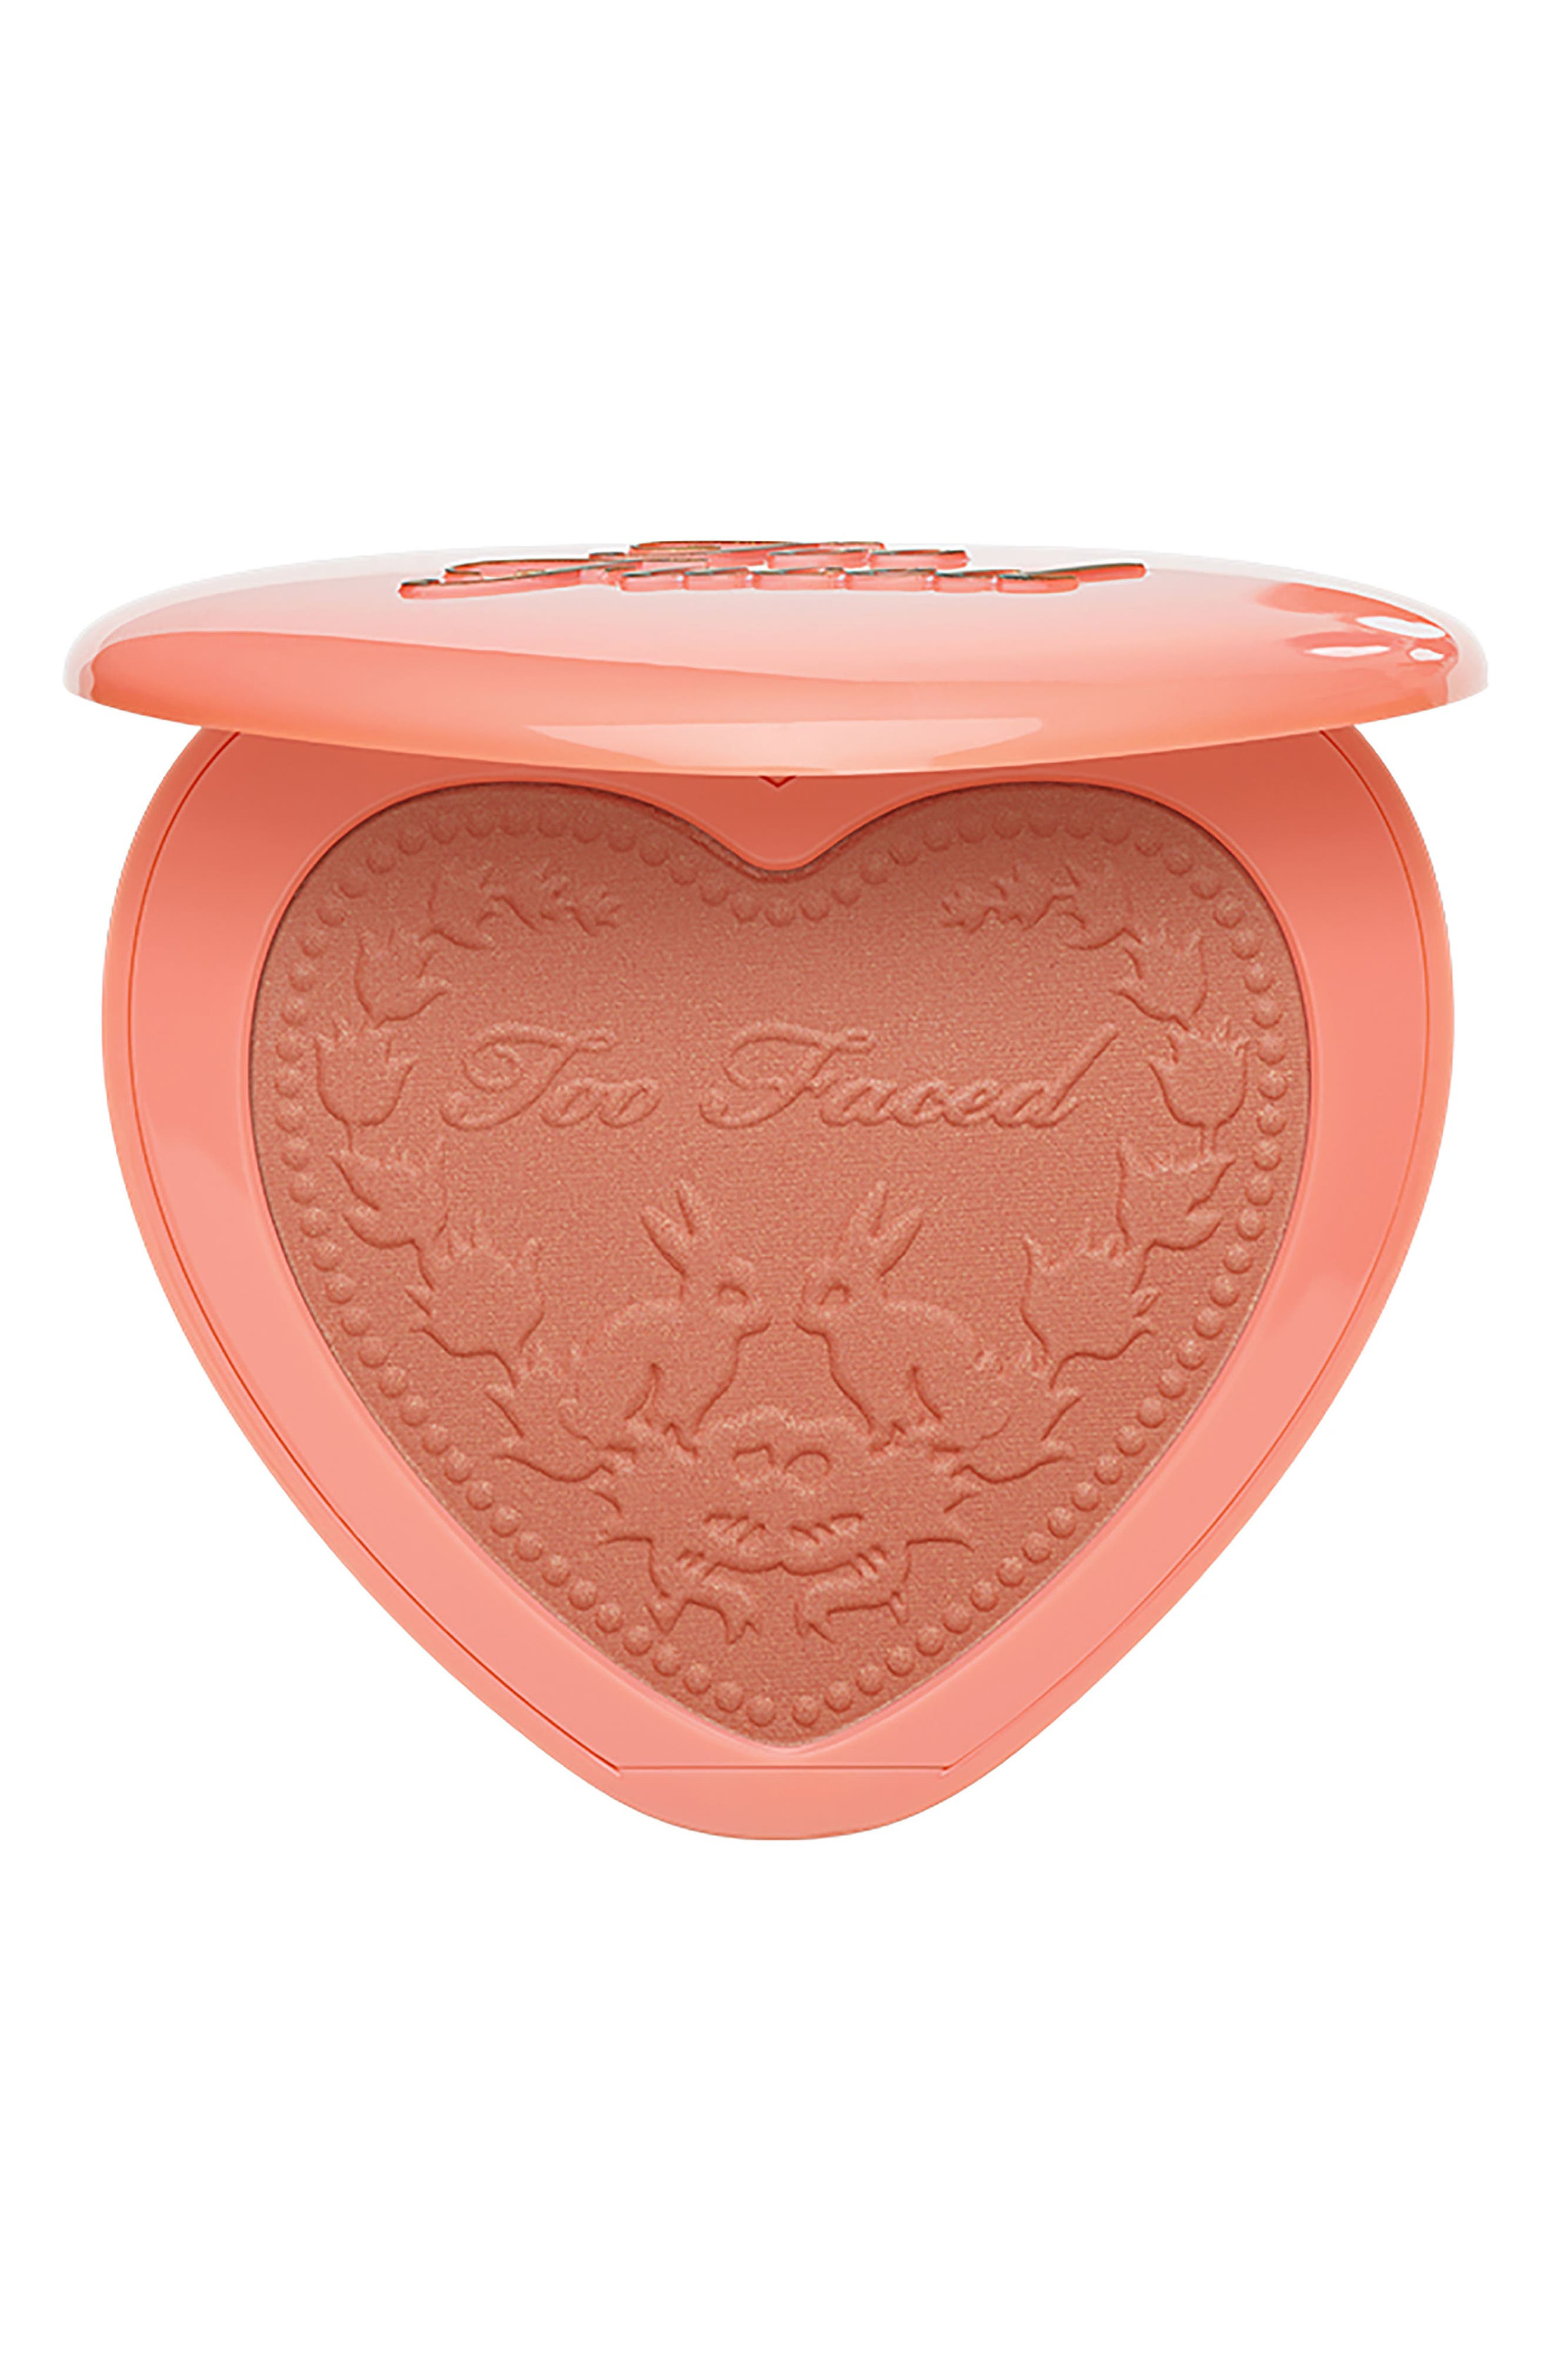 Love Flush Blush,                             Main thumbnail 1, color,                             I Will Always Love You